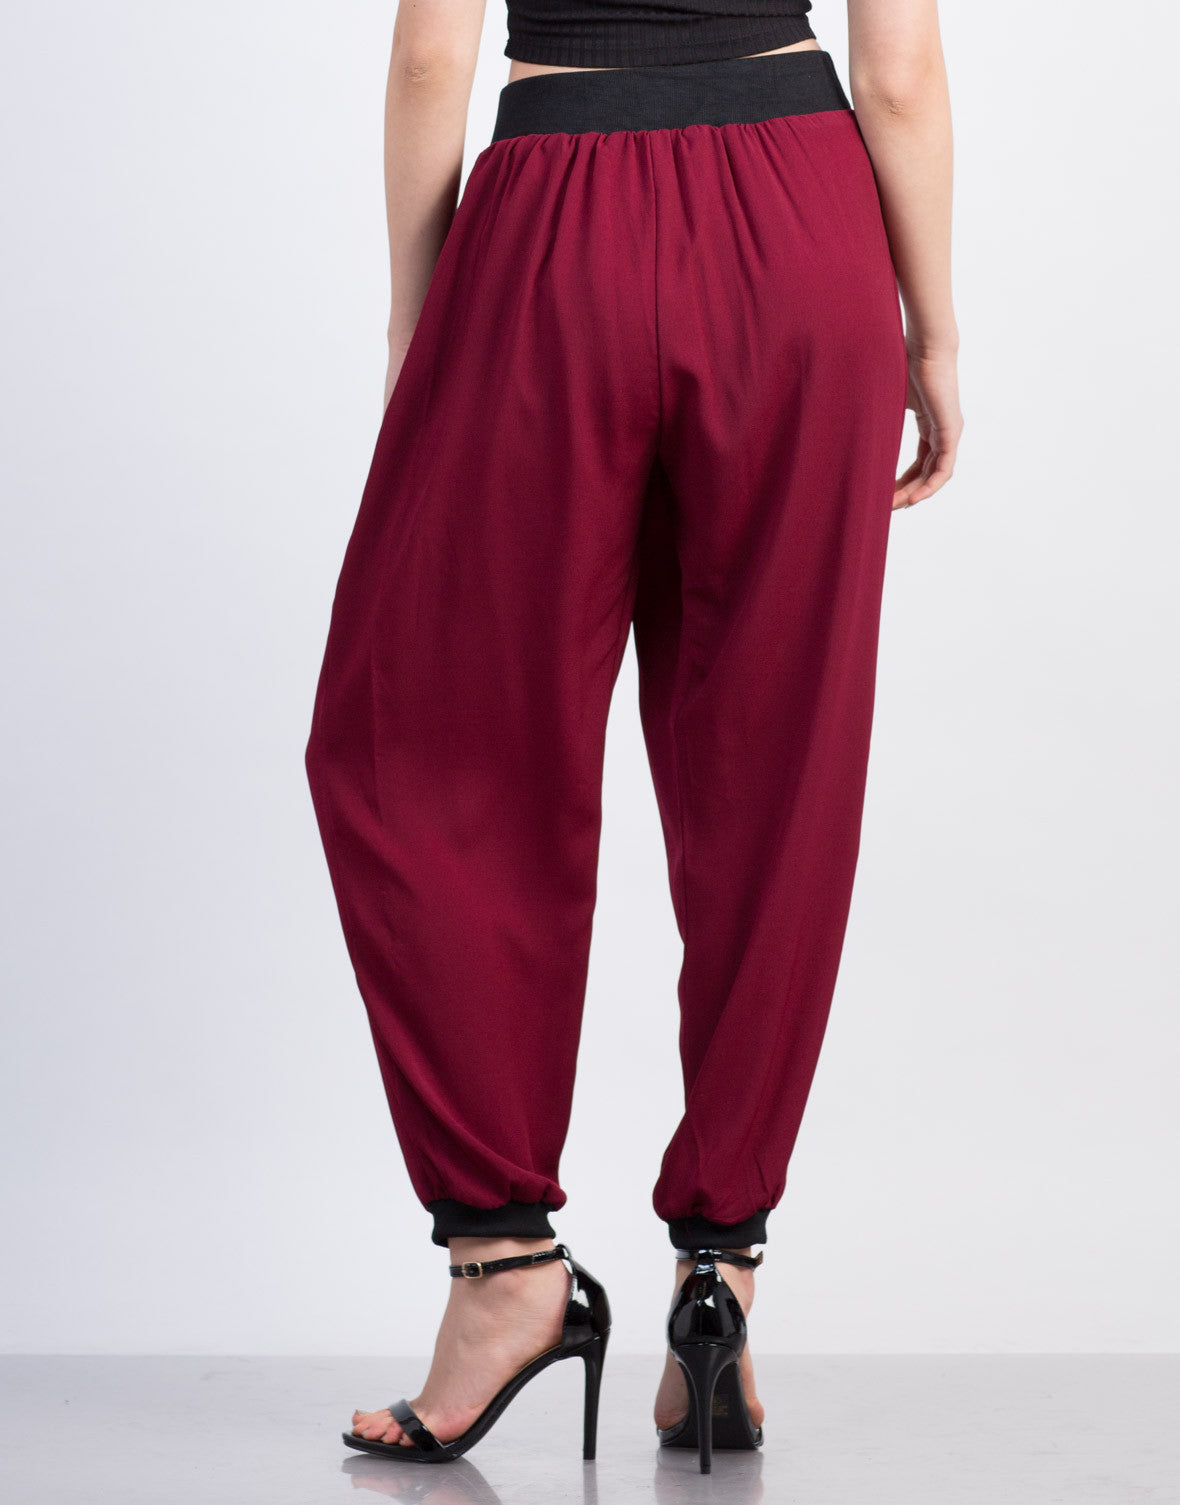 Back View of Chiffon Elastic Waistband Harem Pants